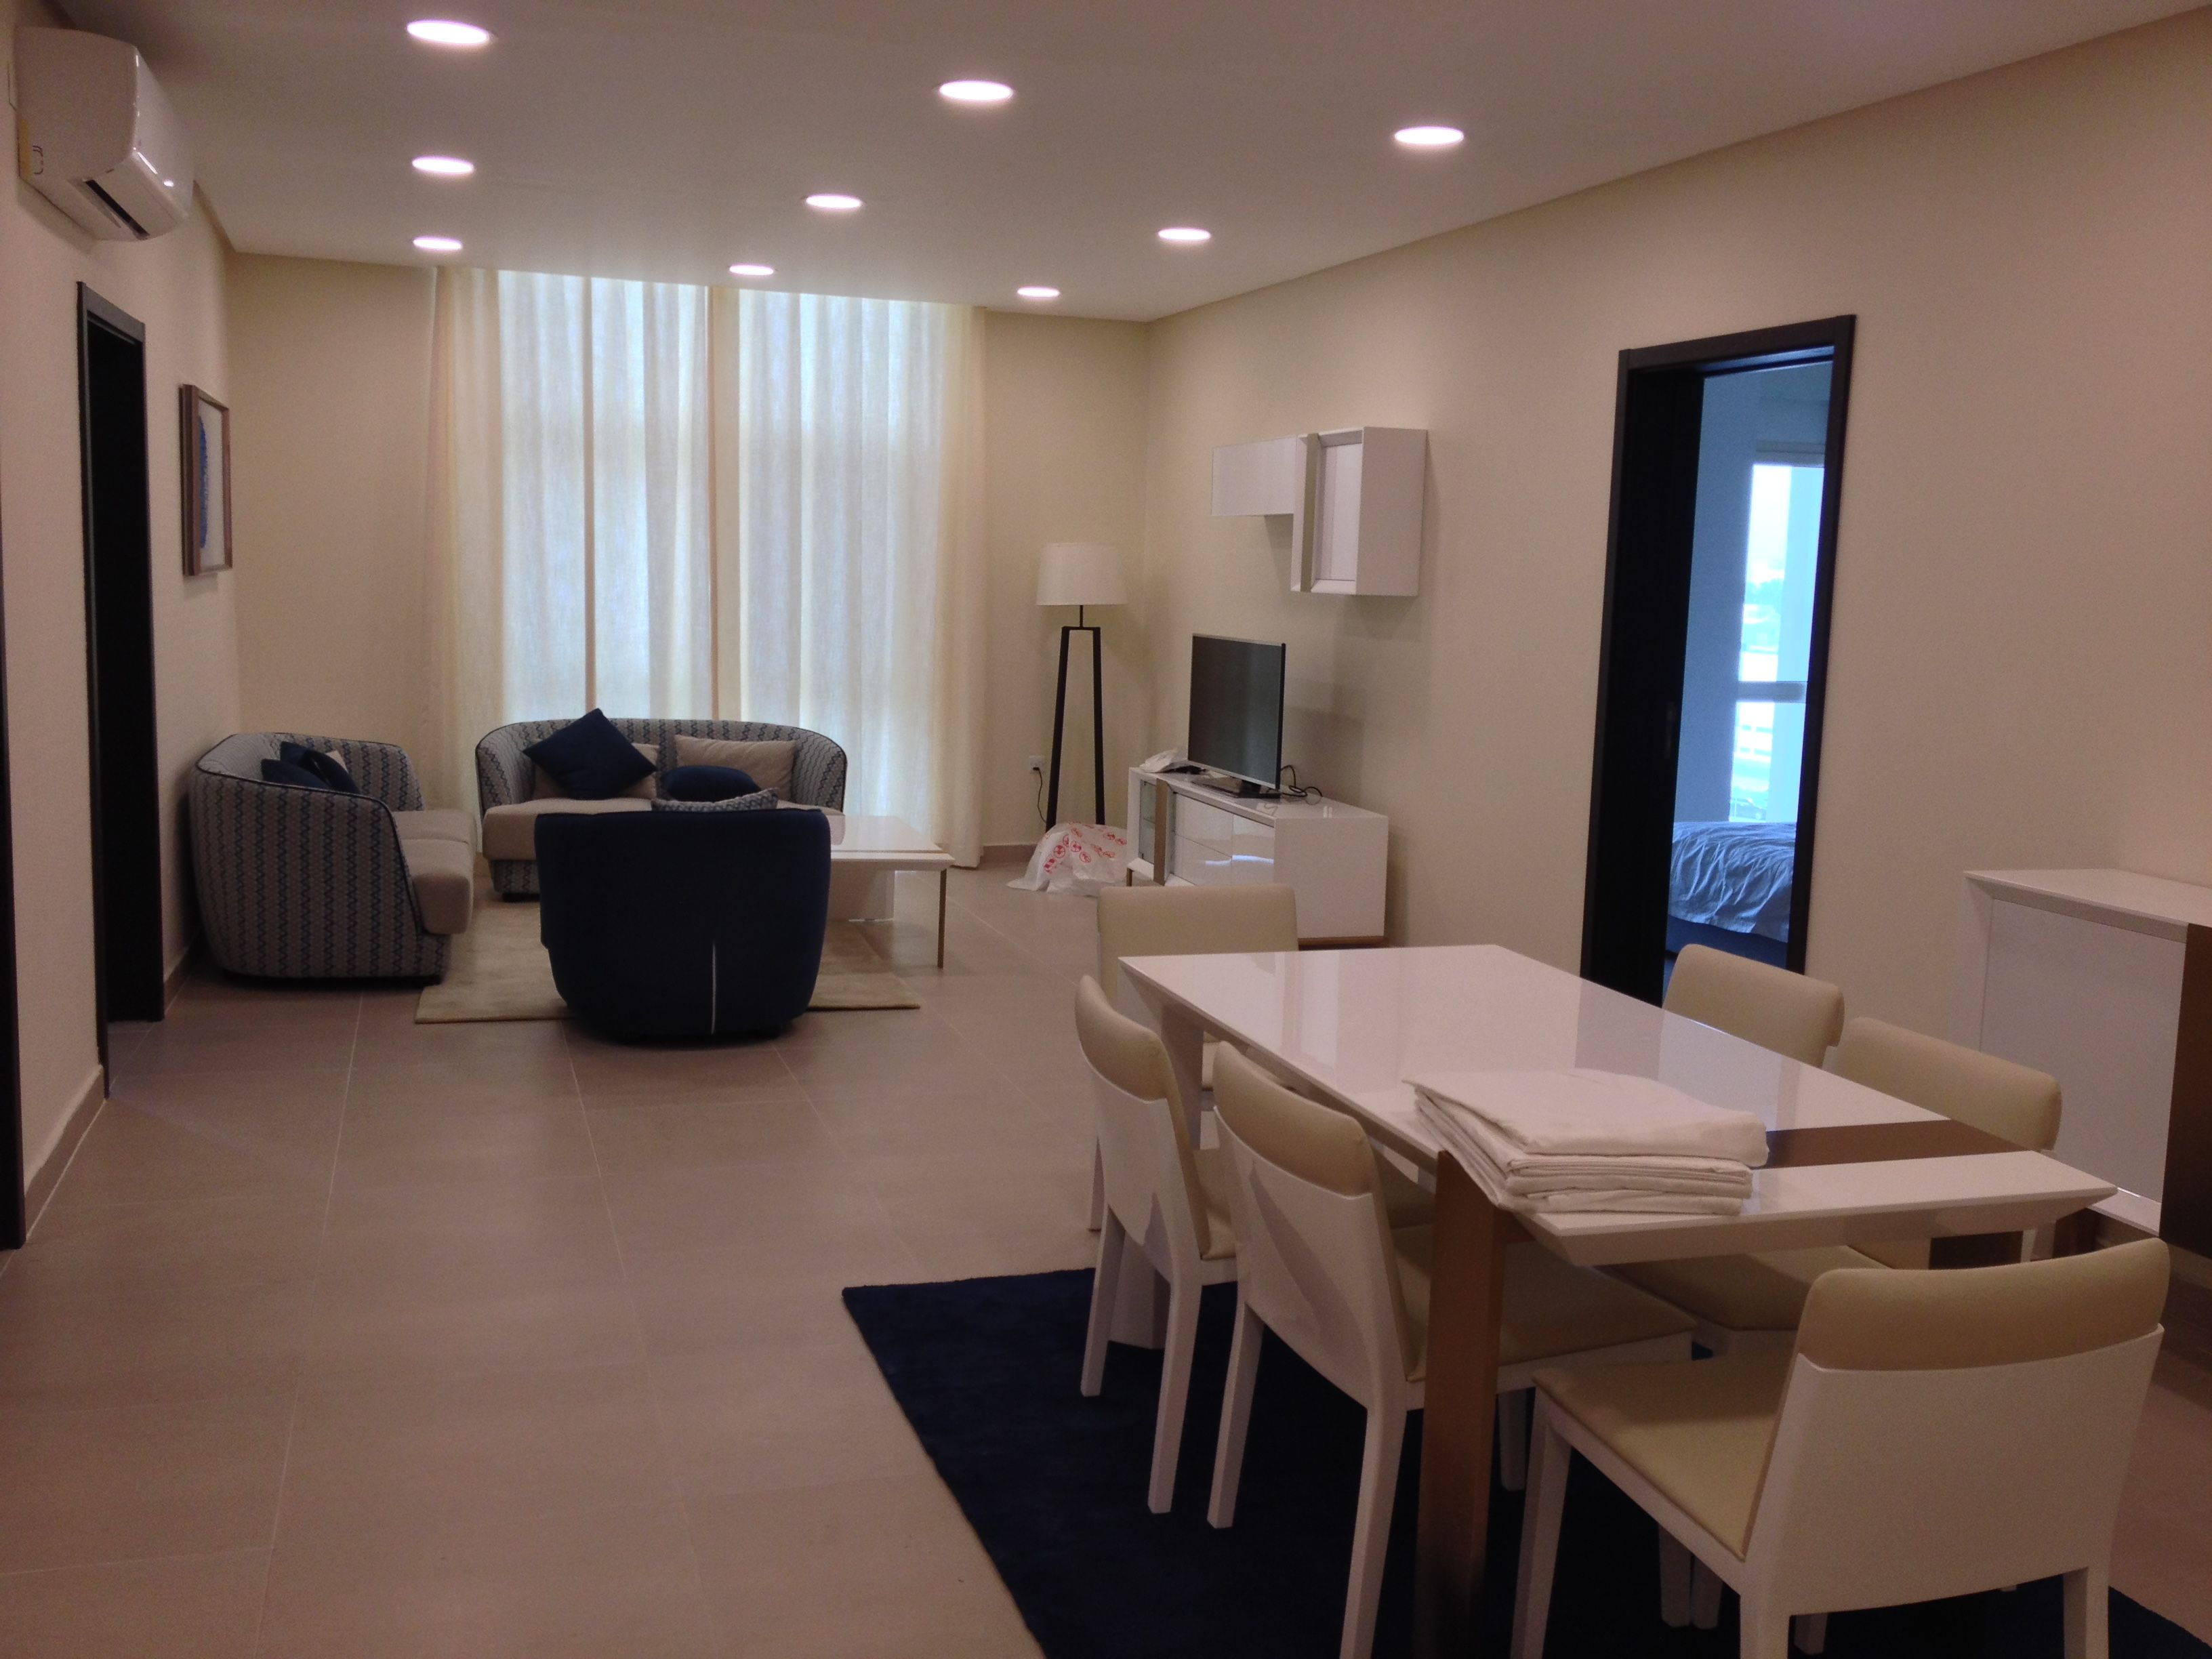 Bahrain Apartment For Rent In Adliya One Bedroom Flats And Two Furnished Suitable Families Executives